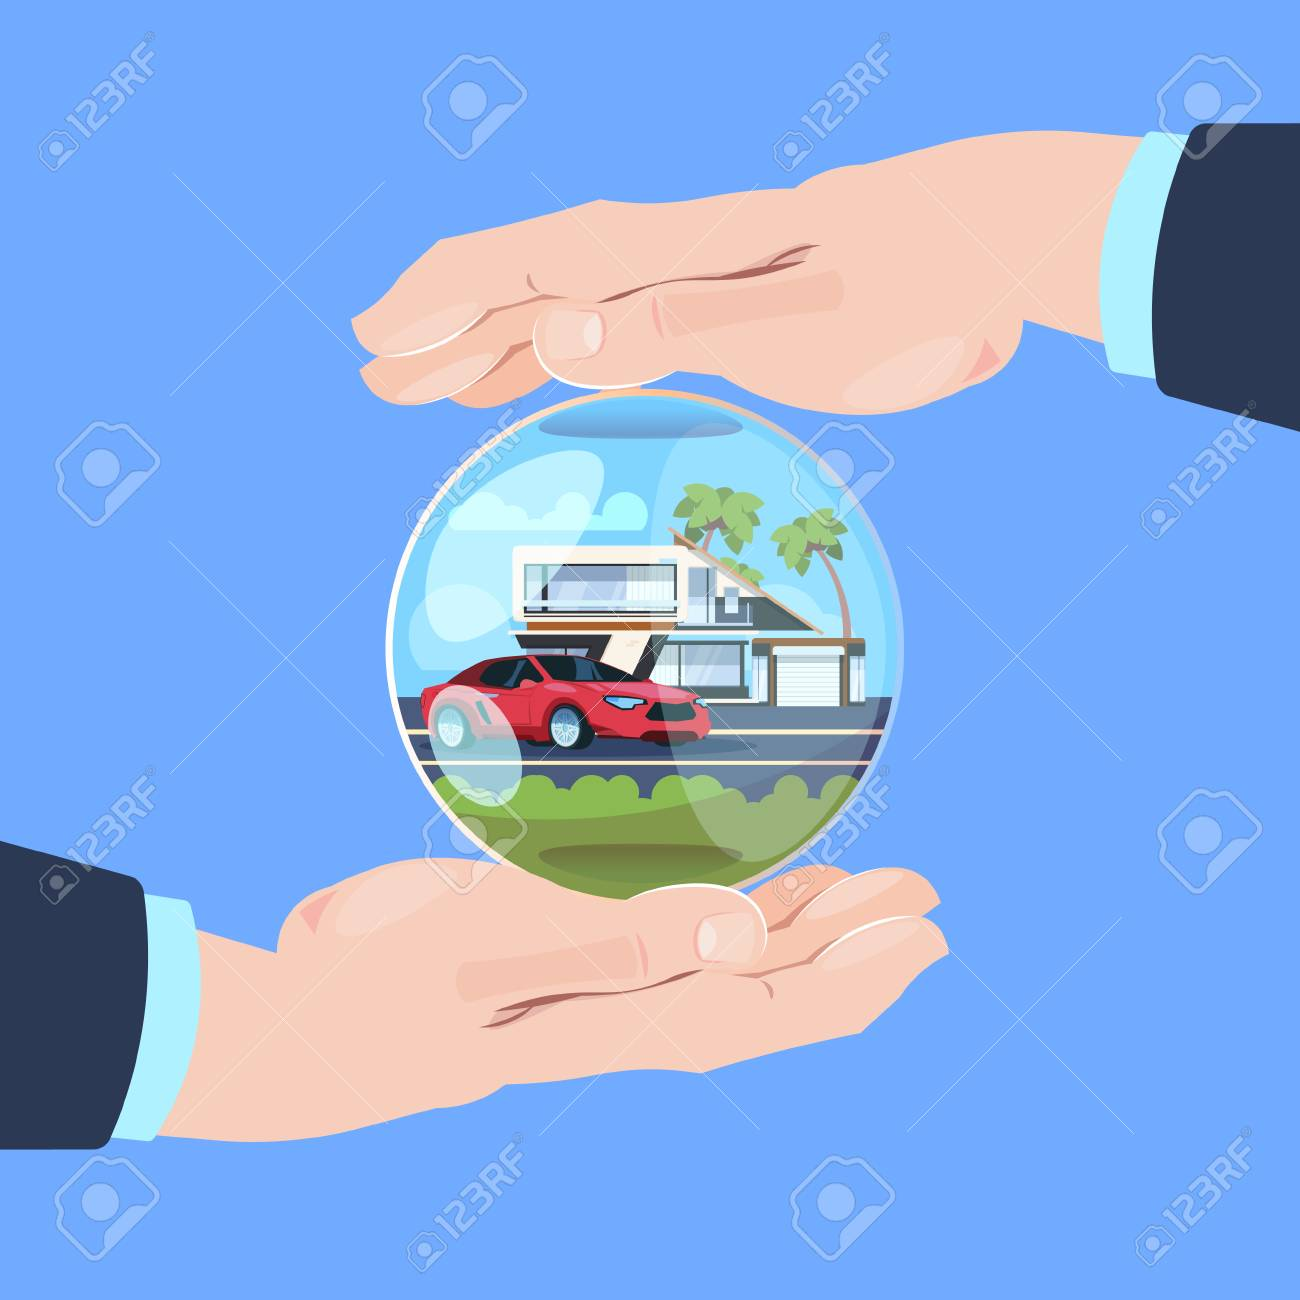 insurance service hand protective gesture bubble car house on blue background flat vector illustration - 103435368